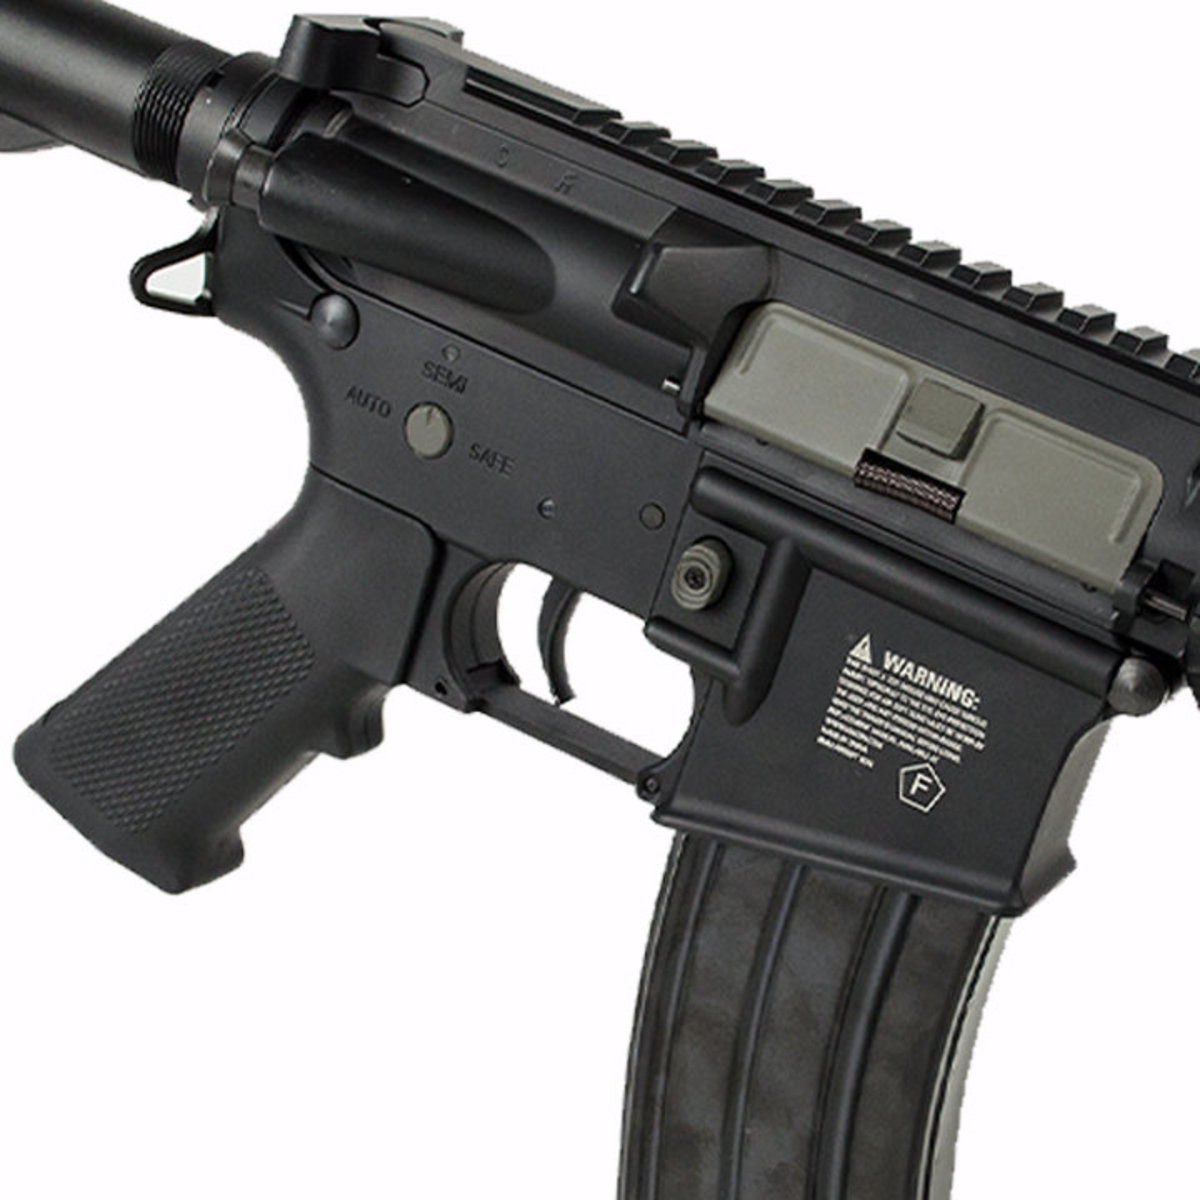 View larger image of Valken Alloy MK II Full Metal AEG Rifle